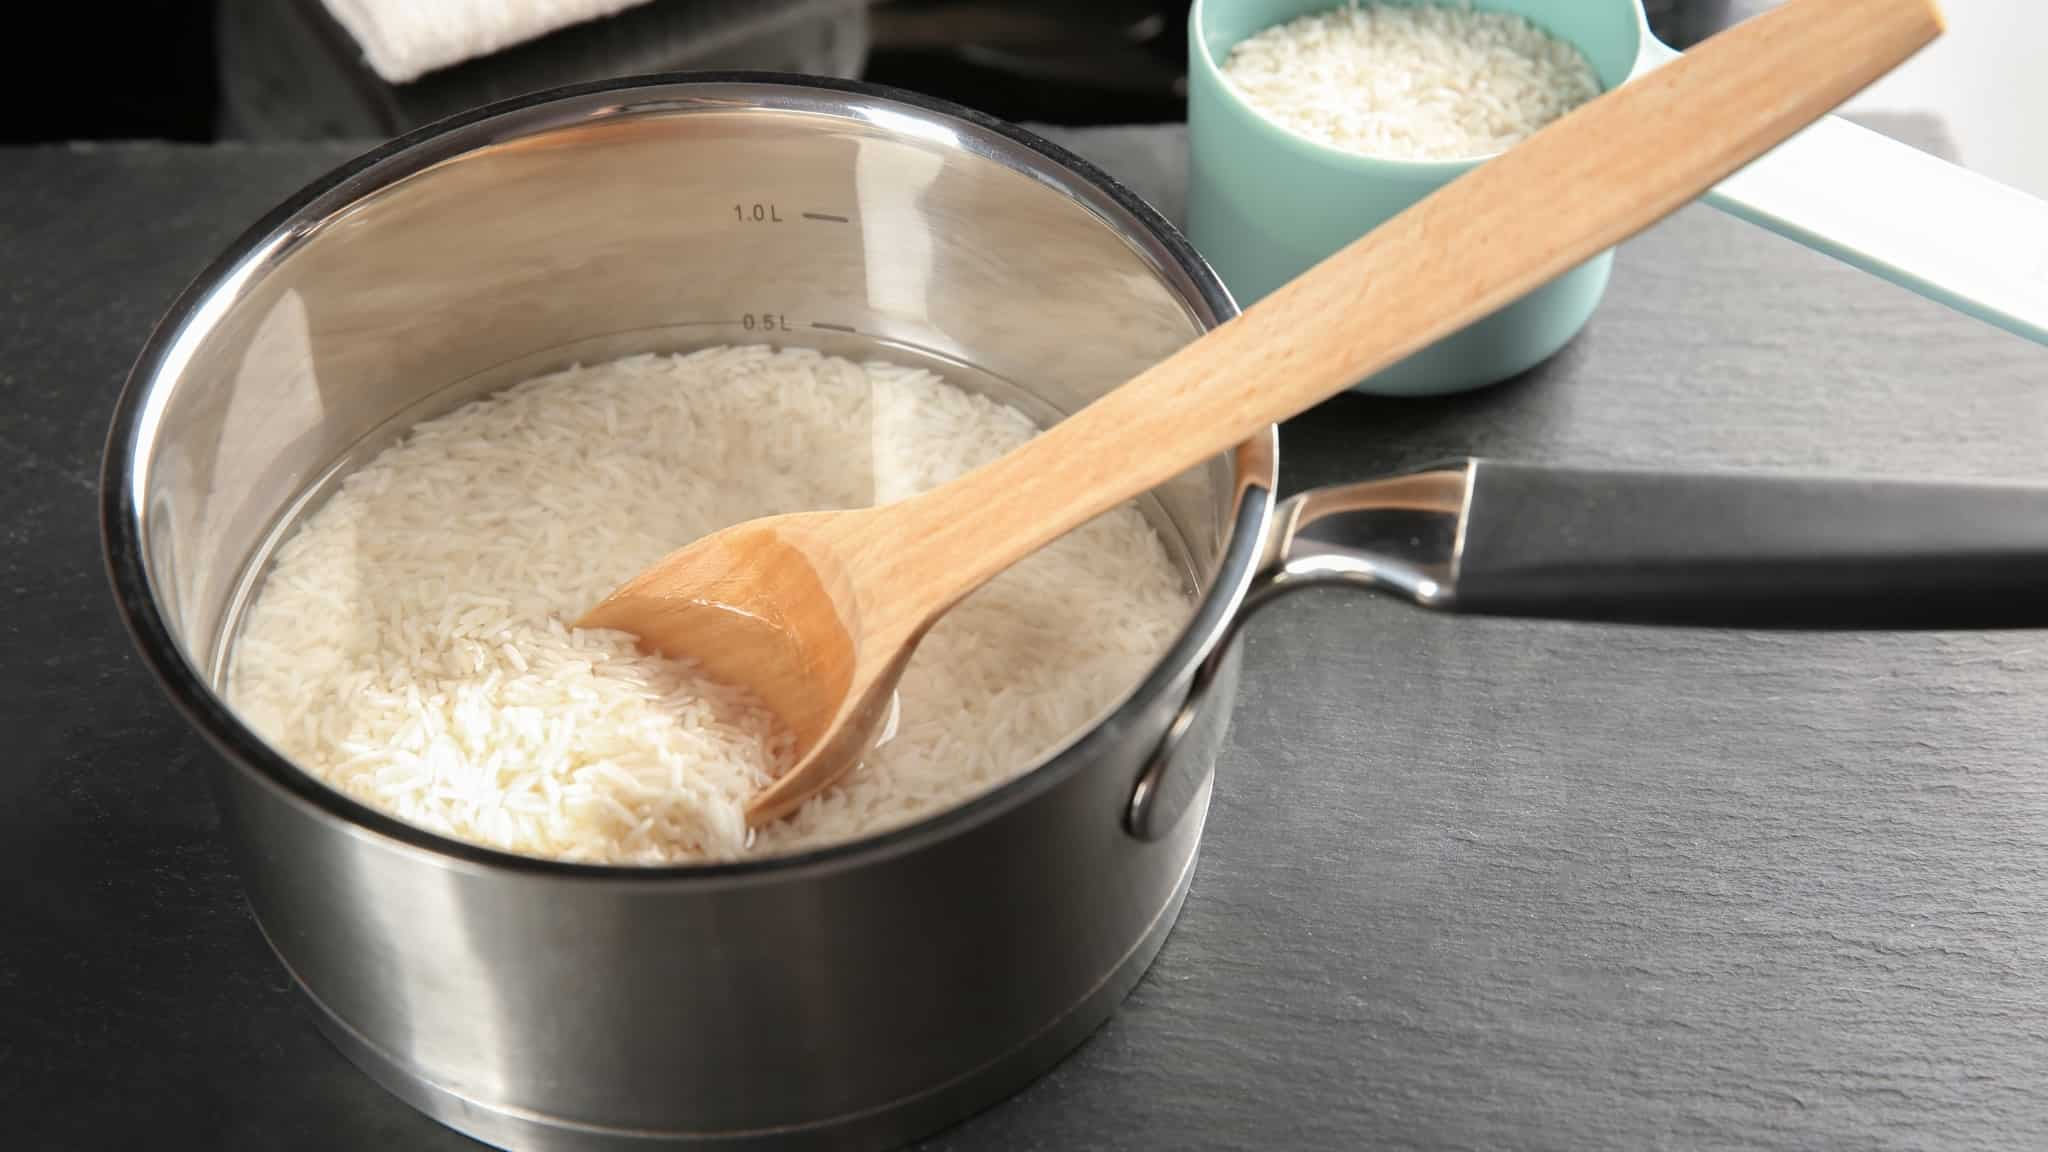 Best saucepan for rice